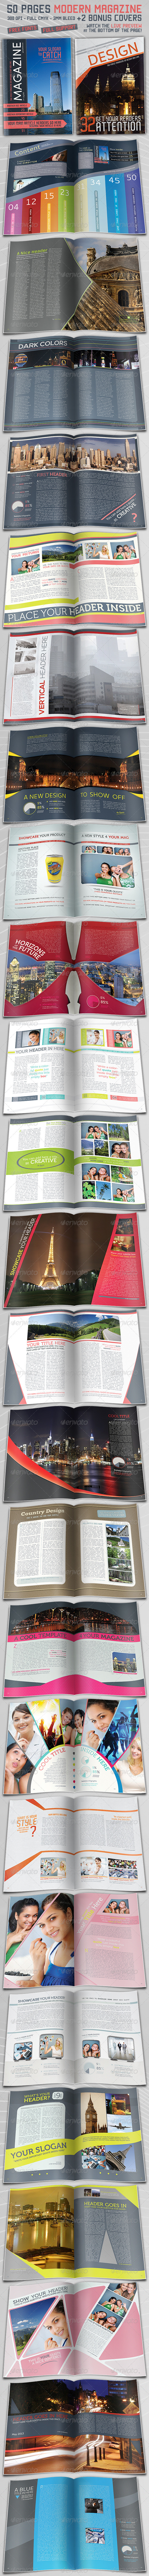 50 Page Magazine / Newsletter Indesign + 2 Covers - Magazines Print Templates